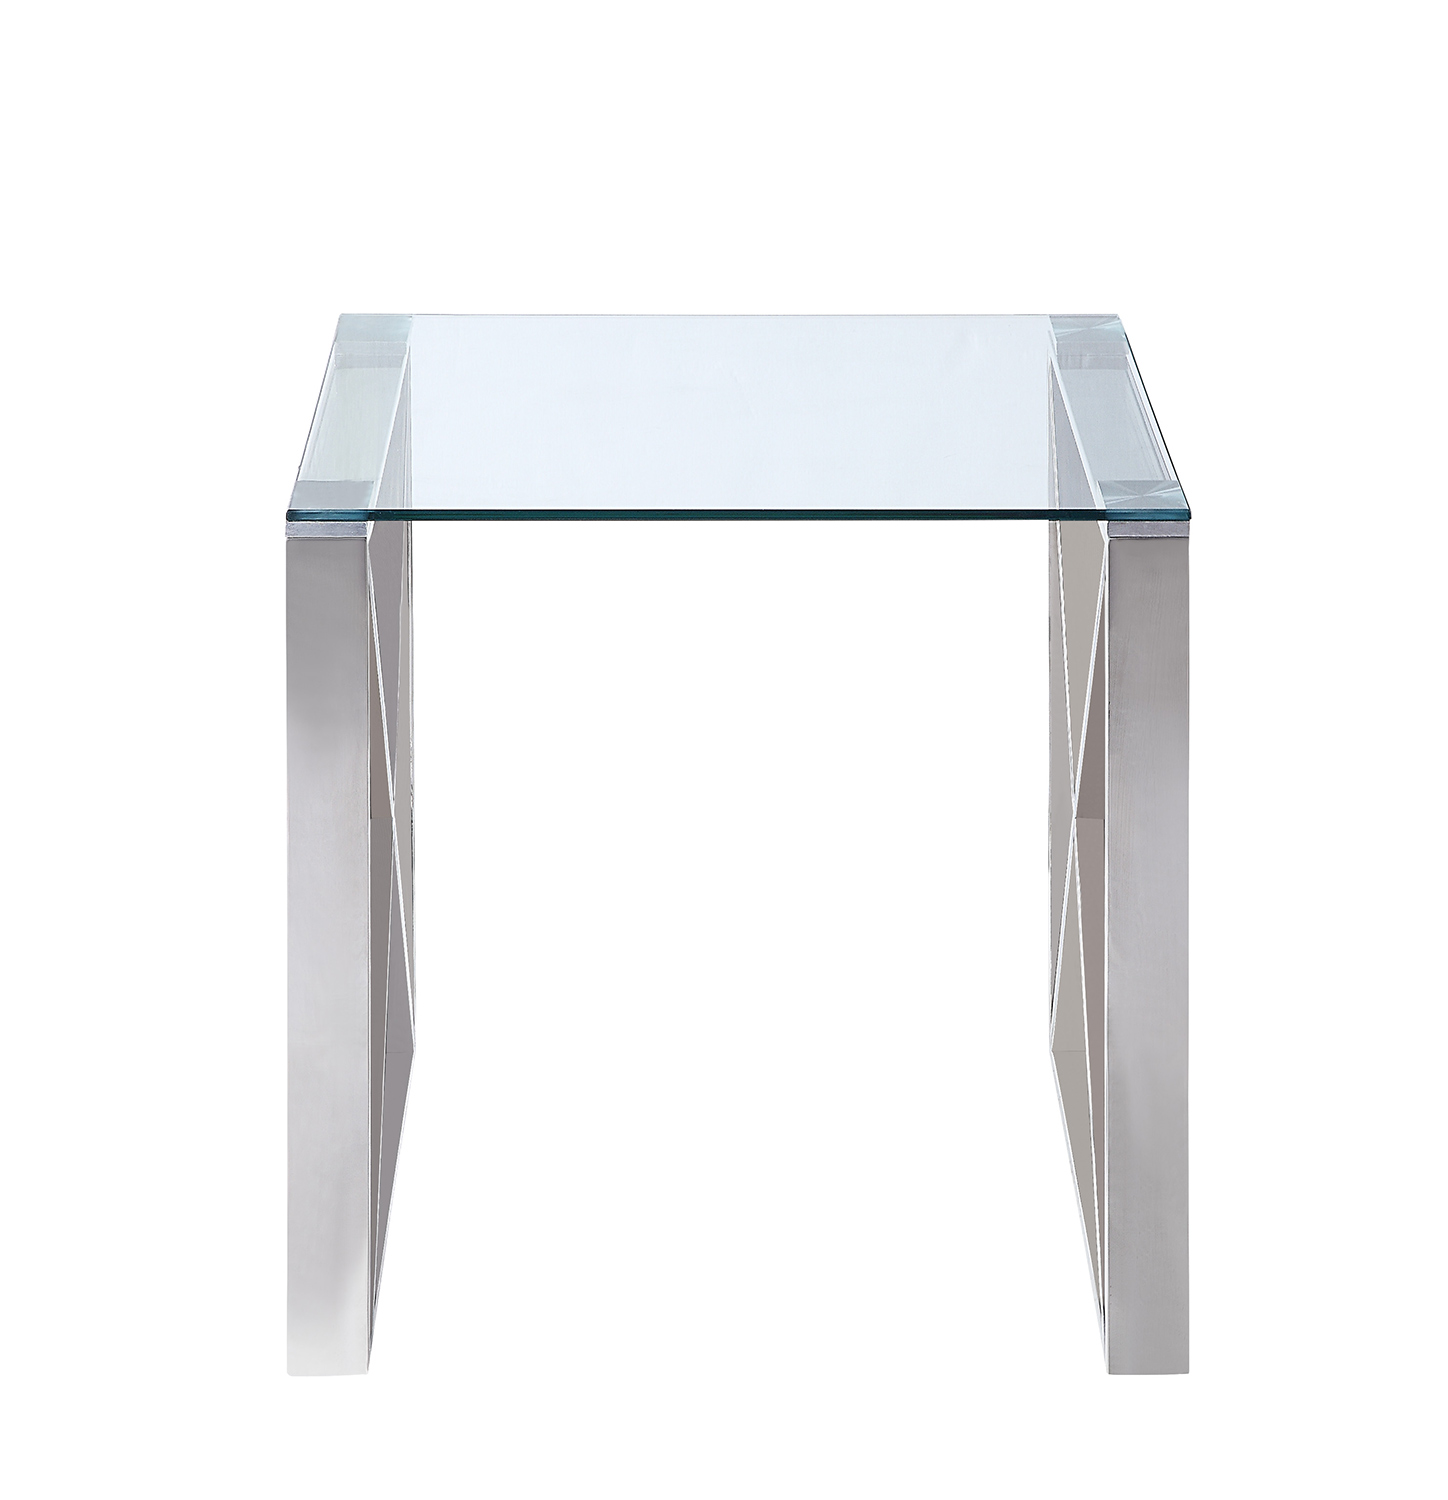 Homelegance Rush End Table with Glass Top - Polished Chrome